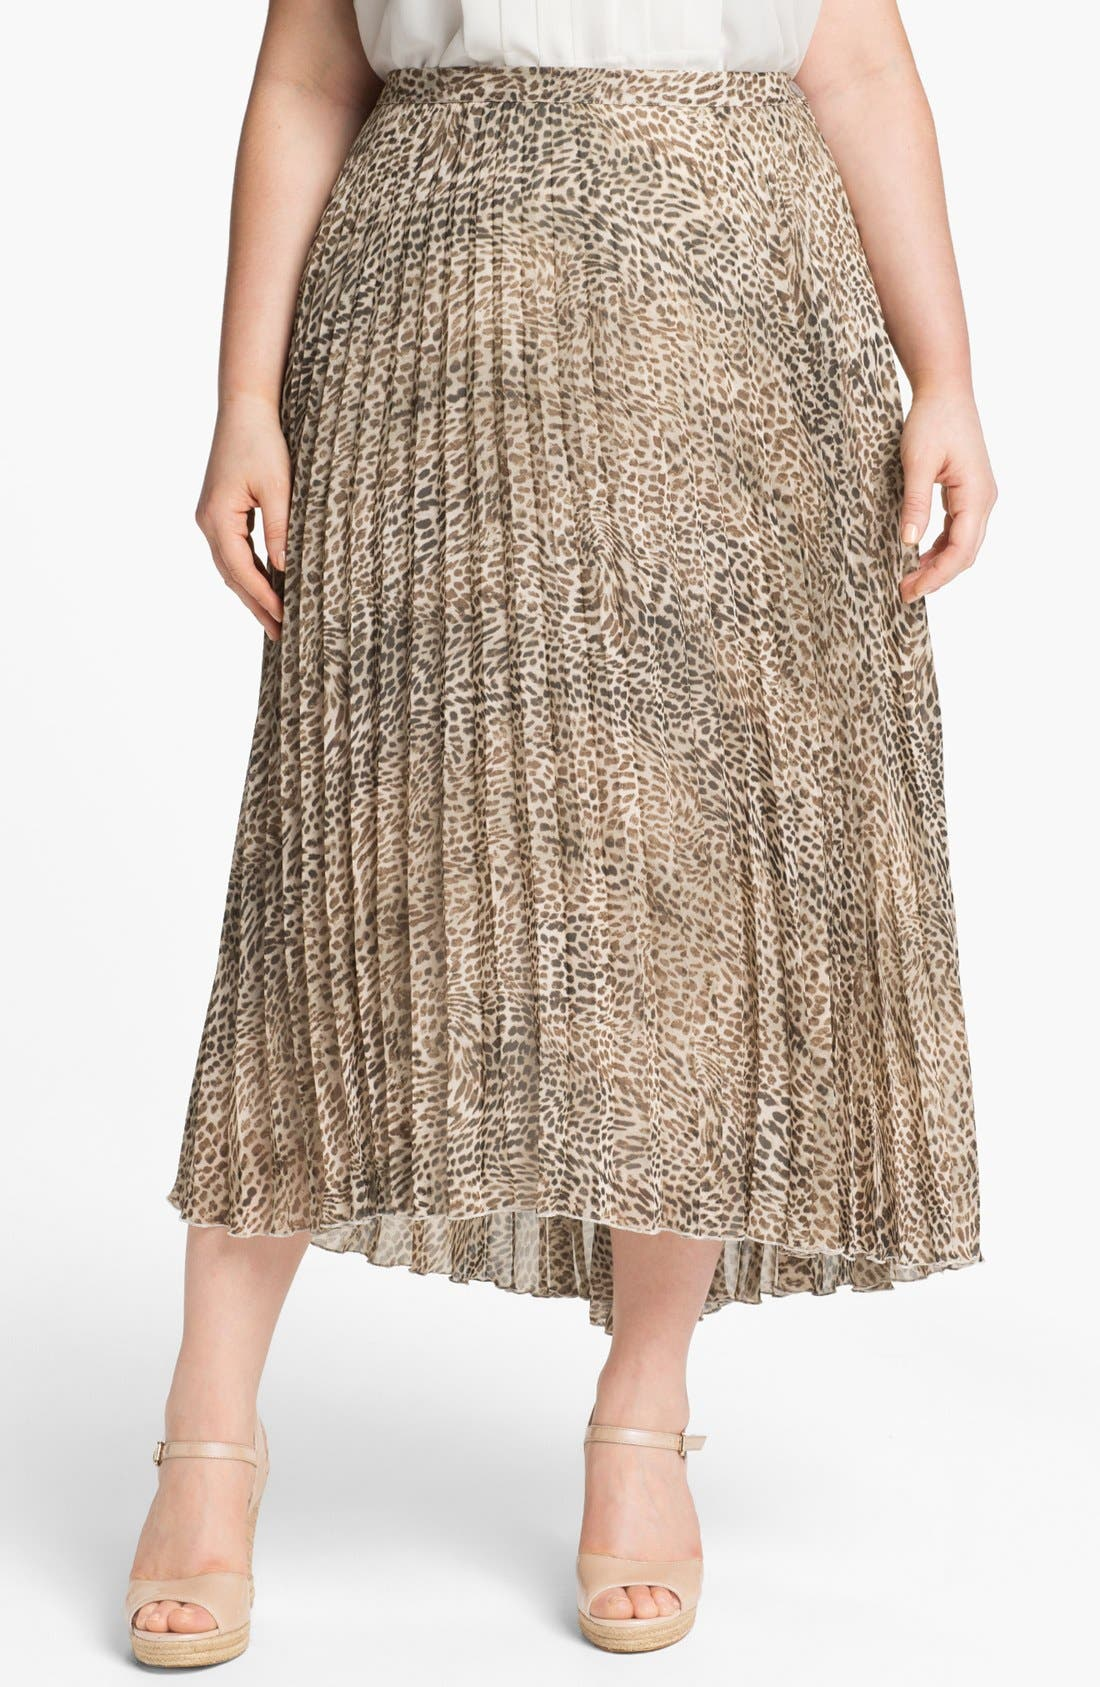 Alternate Image 1 Selected - Vince Camuto Cheetah Print Chiffon Skirt (Plus Size)